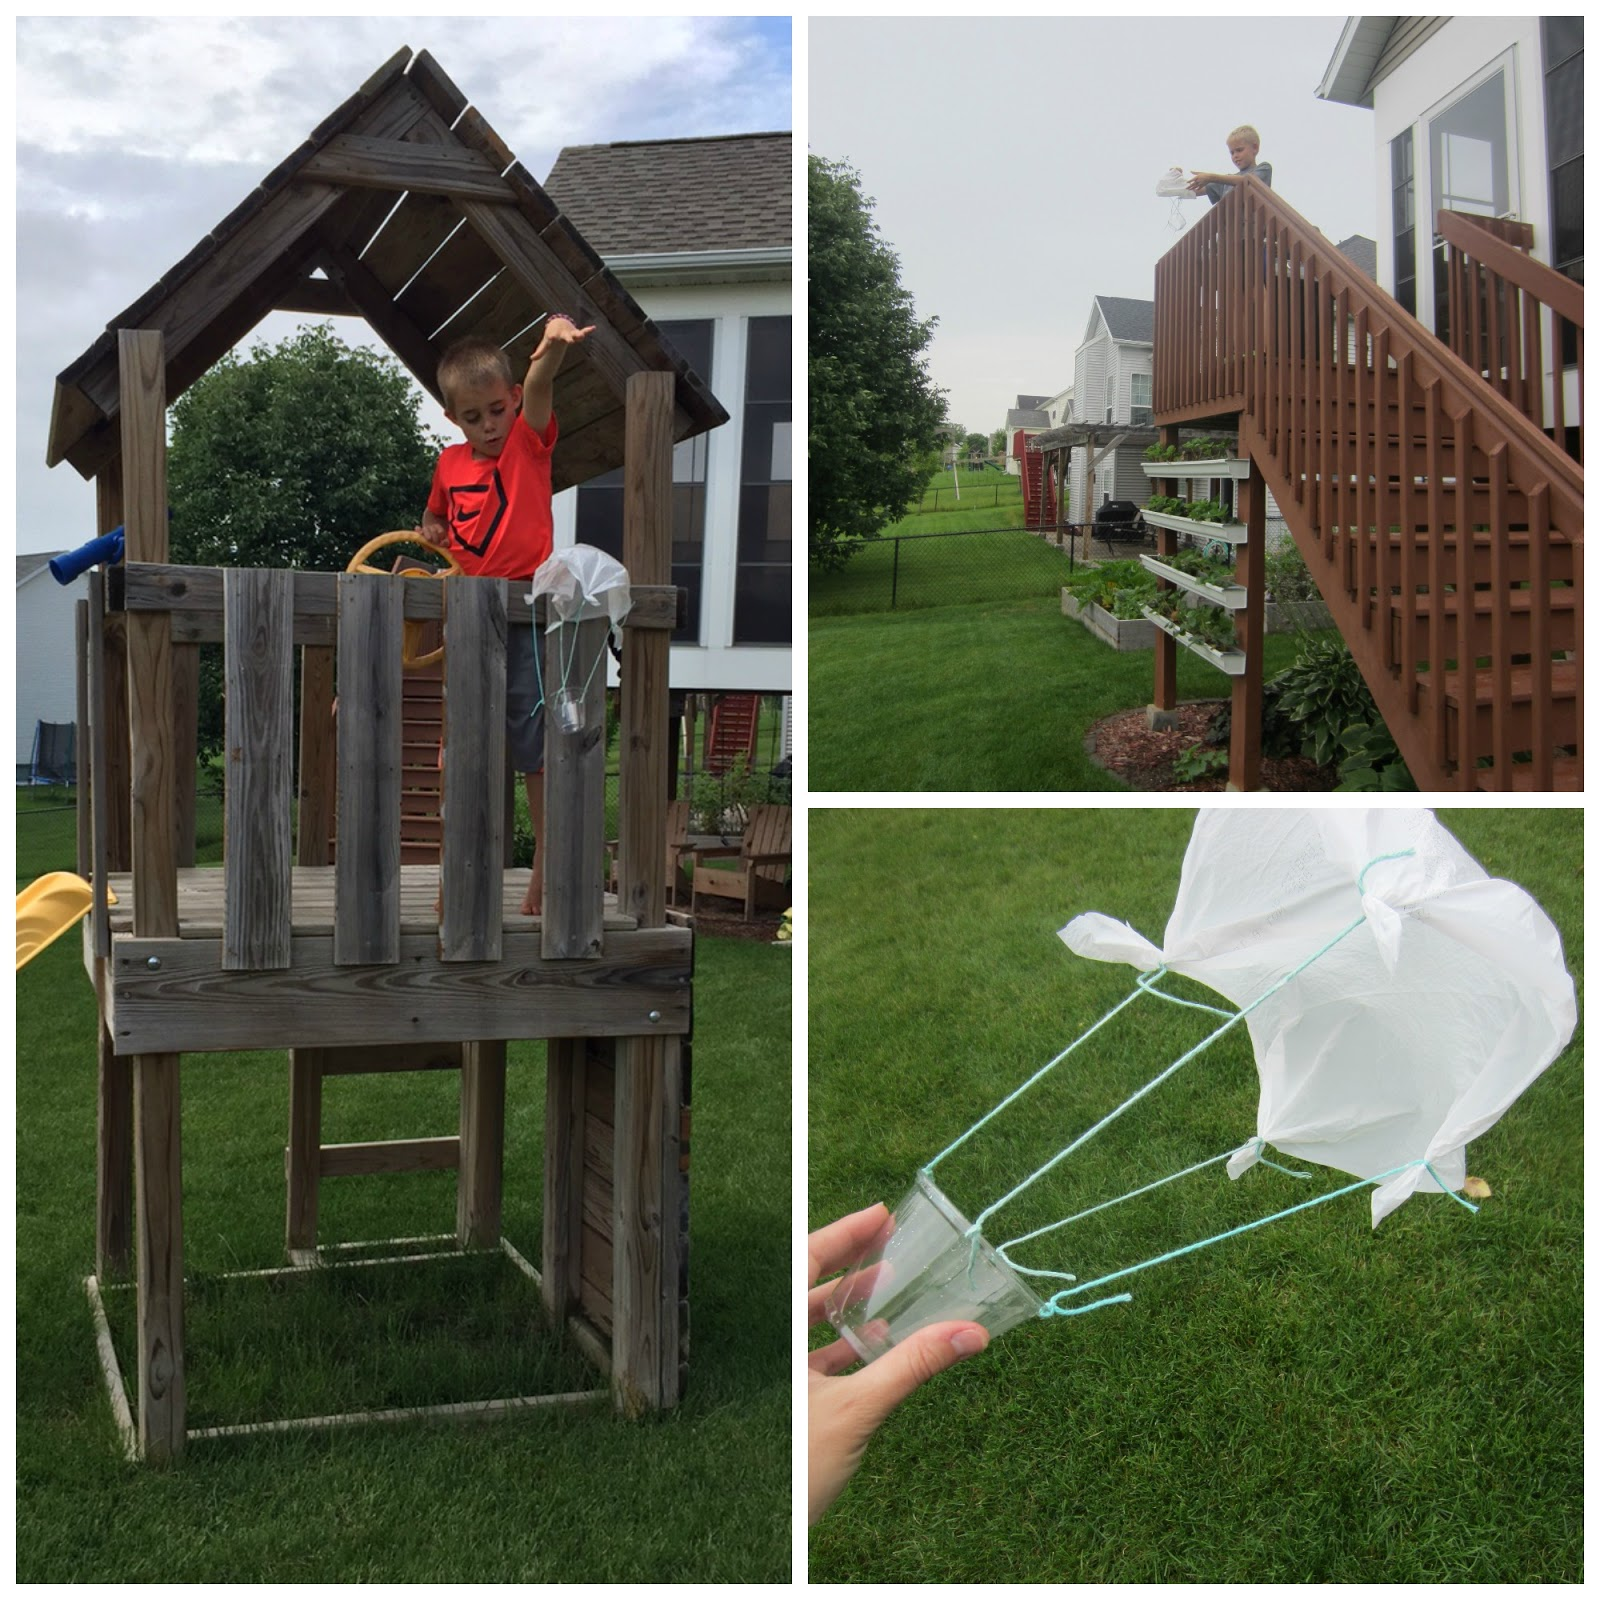 relentlessly fun deceptively educational diy parachutes and the